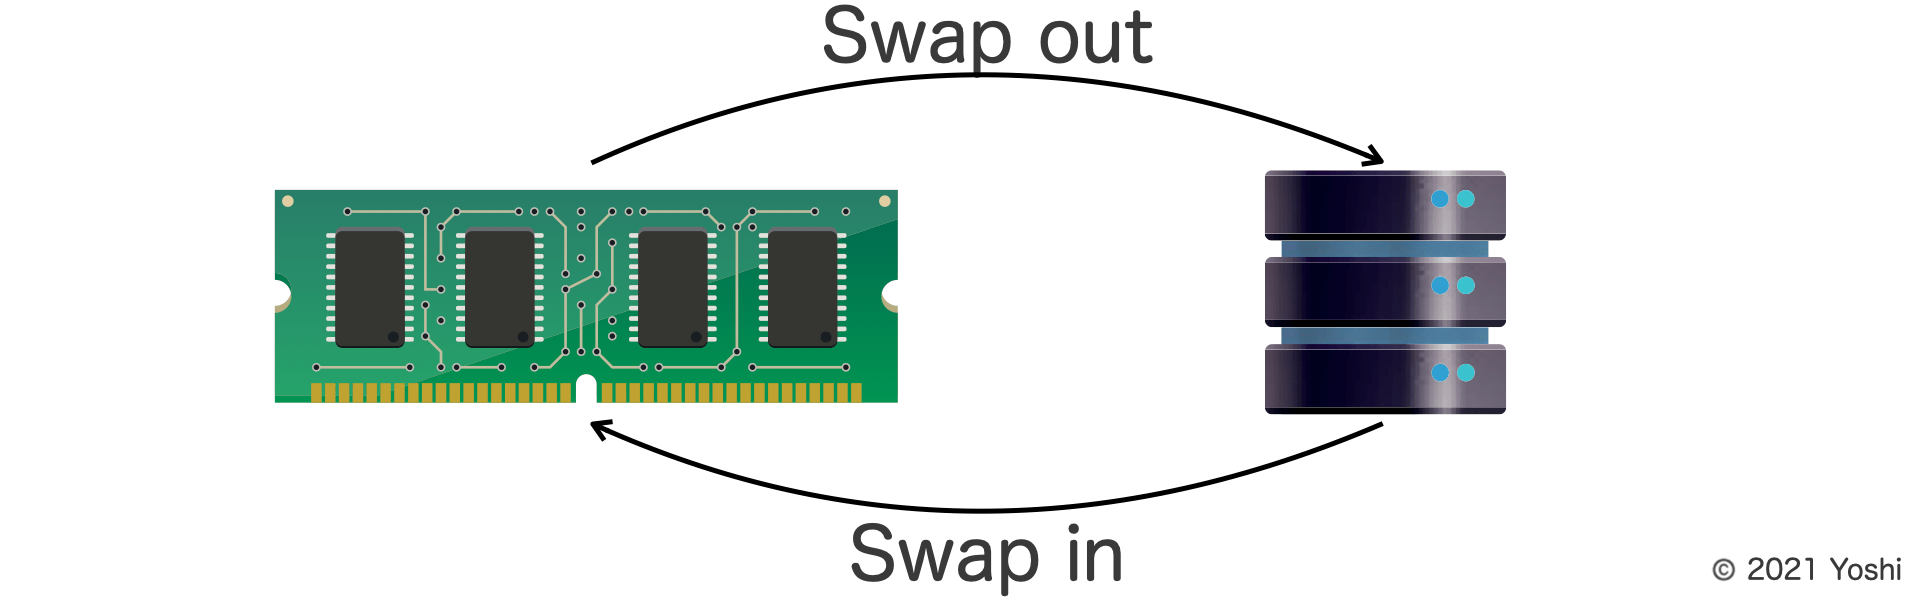 swap in and swap out